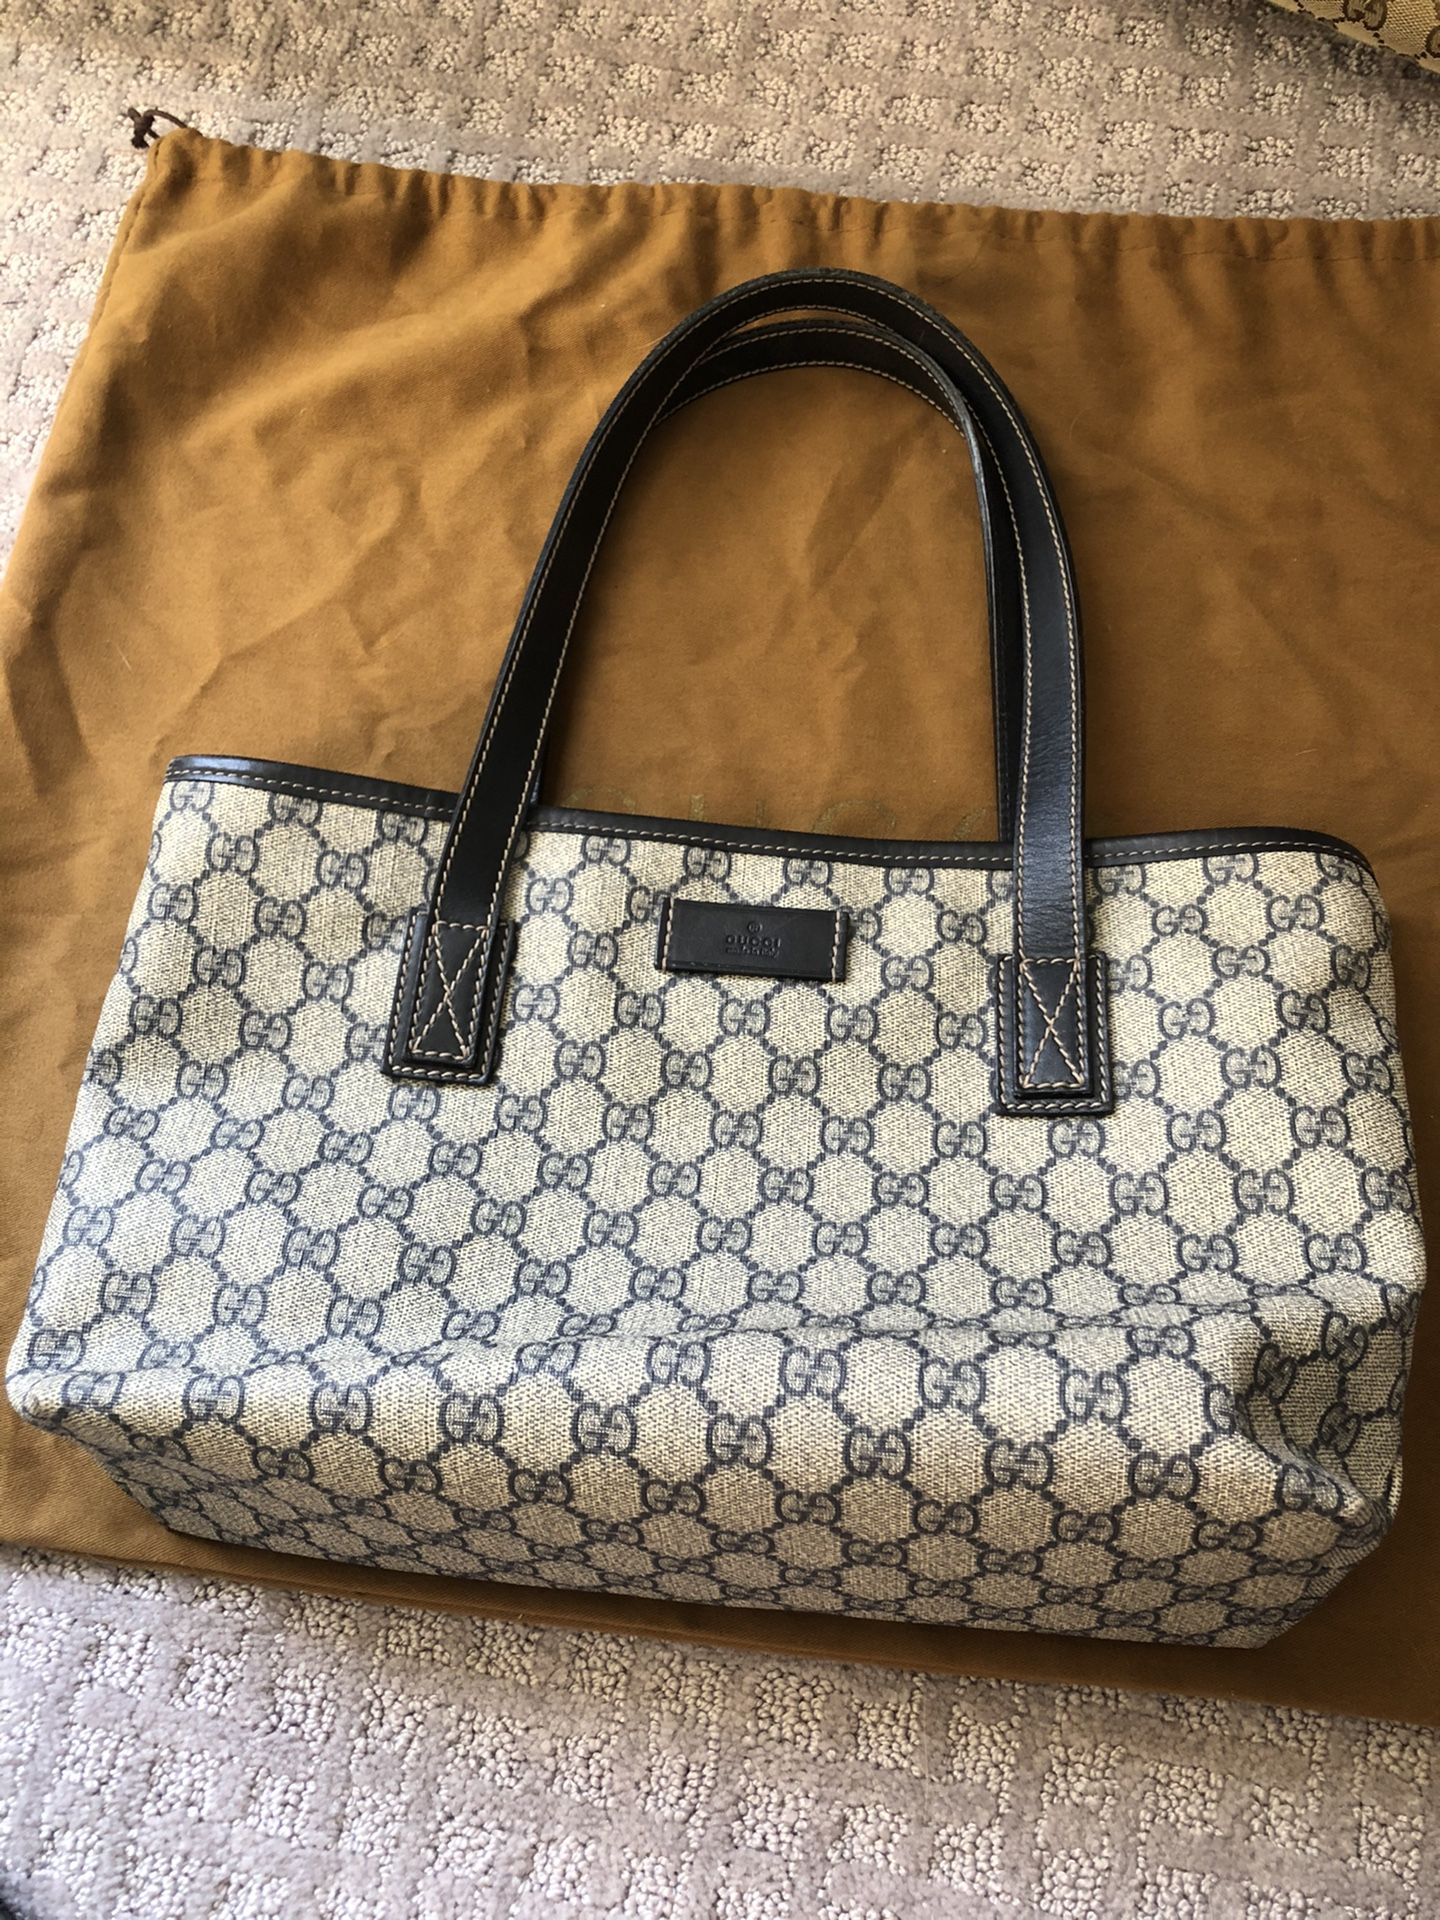 Authentic Gucci Tote Small With Blue Leather Straps